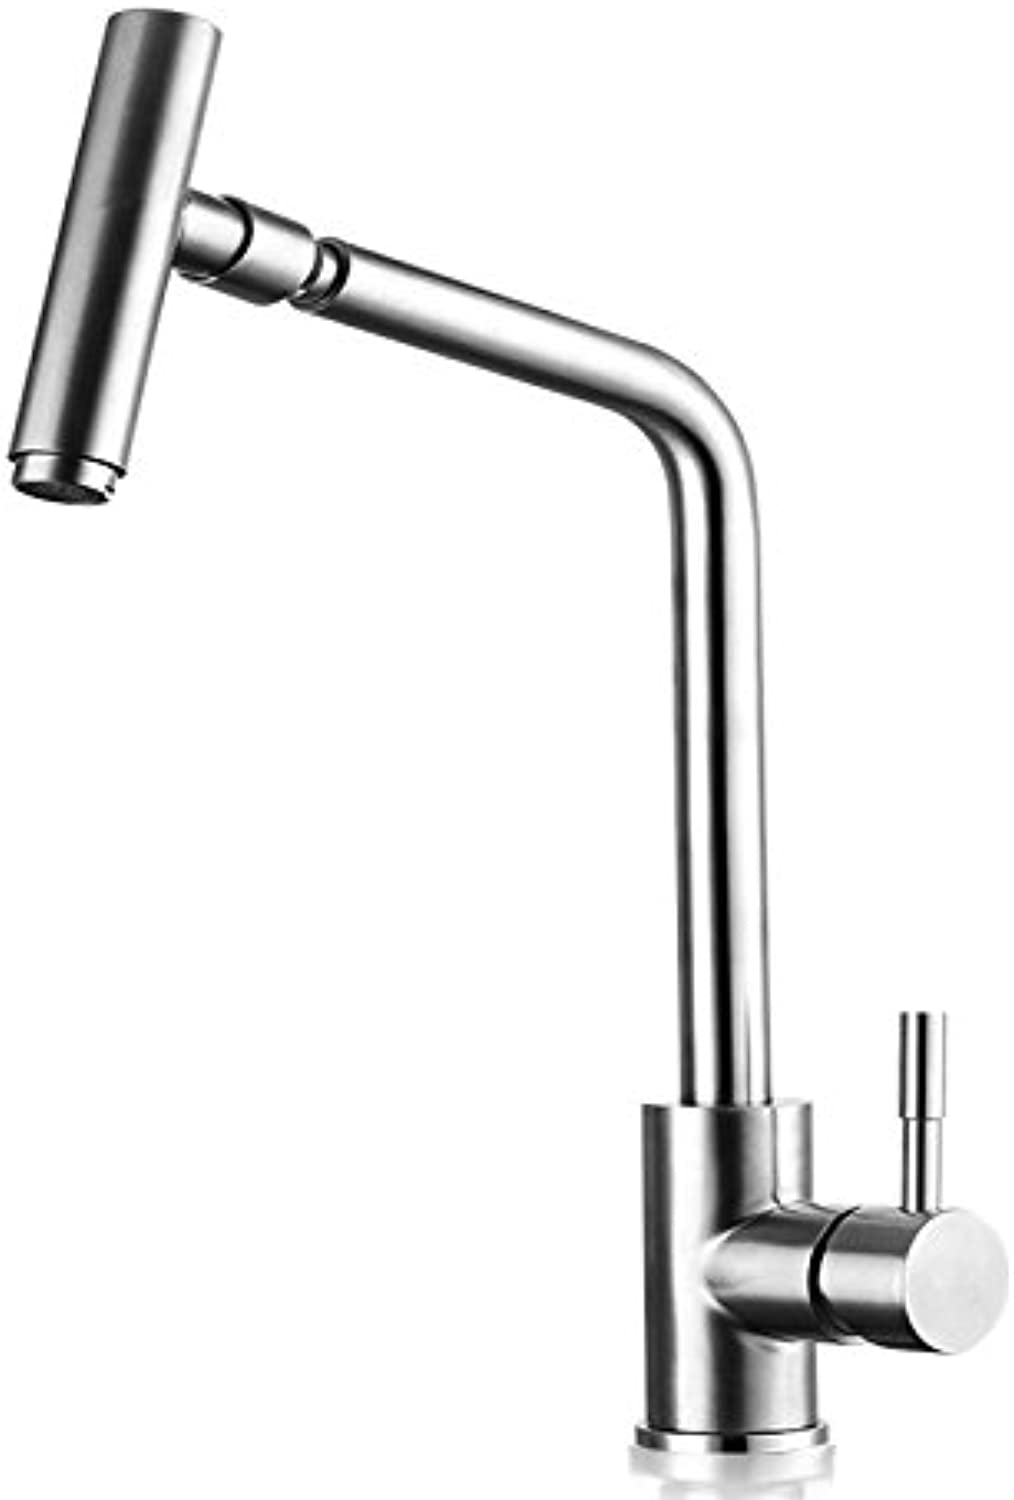 YAWEDA Kitchen Washing Basin Hot and Cold Water Faucet 304 Stainless Steel Sink Faucet Wire Spinning Swivel Swinging Mouth Cold and Hot Faucet 360 Degree redary Lead Environmental Predection Faucet